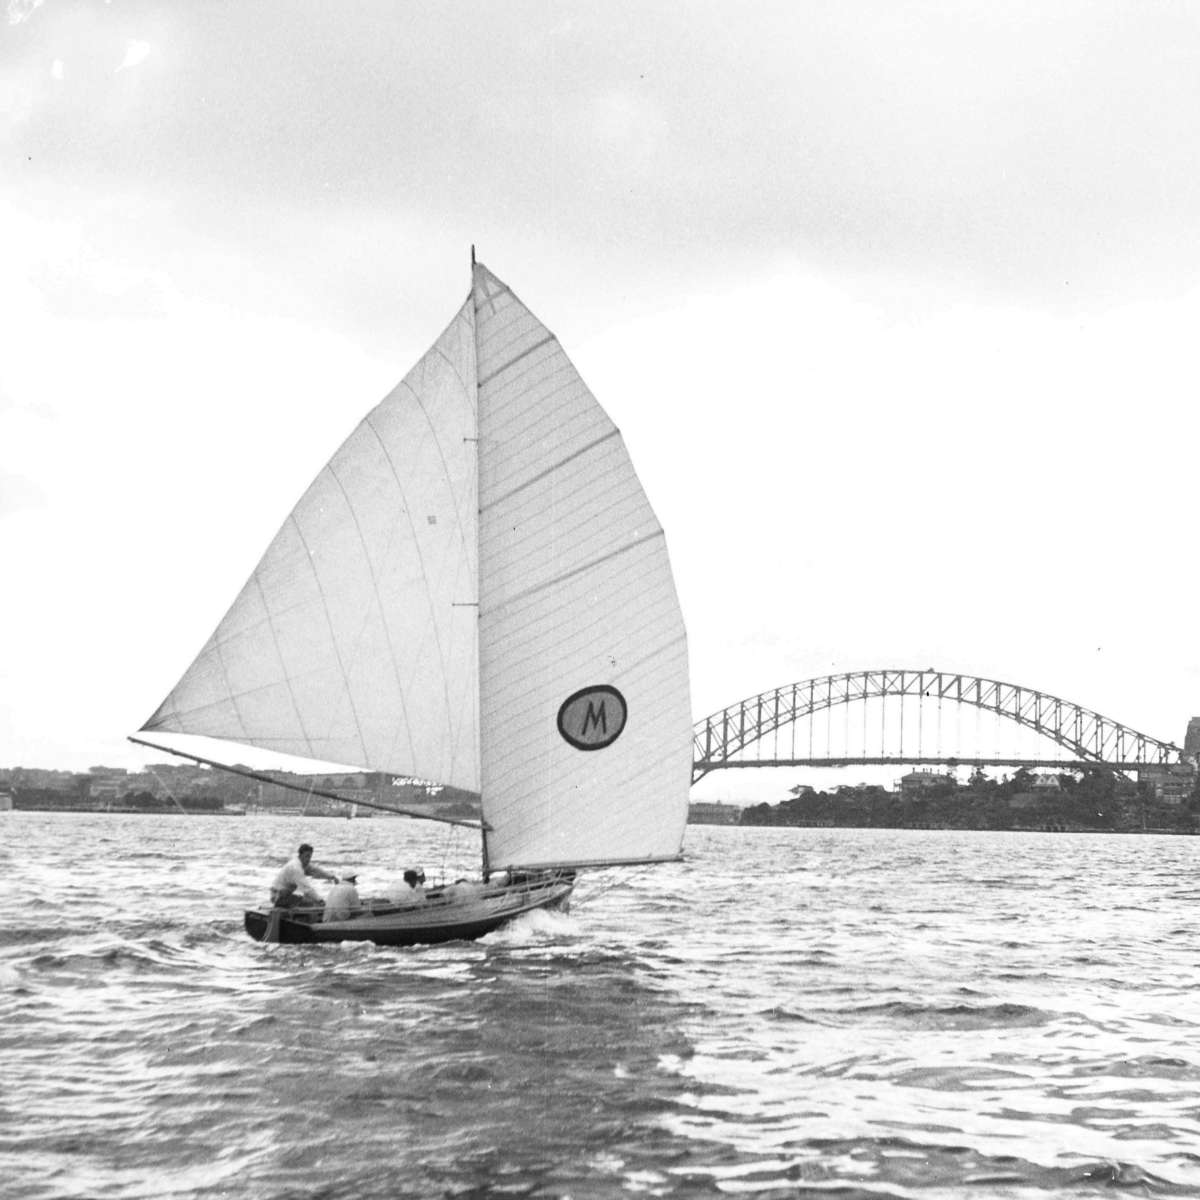 18-footer MYRA TOO on Sydney Harbour, 1951. Photo by William Hall, ANMM Collection